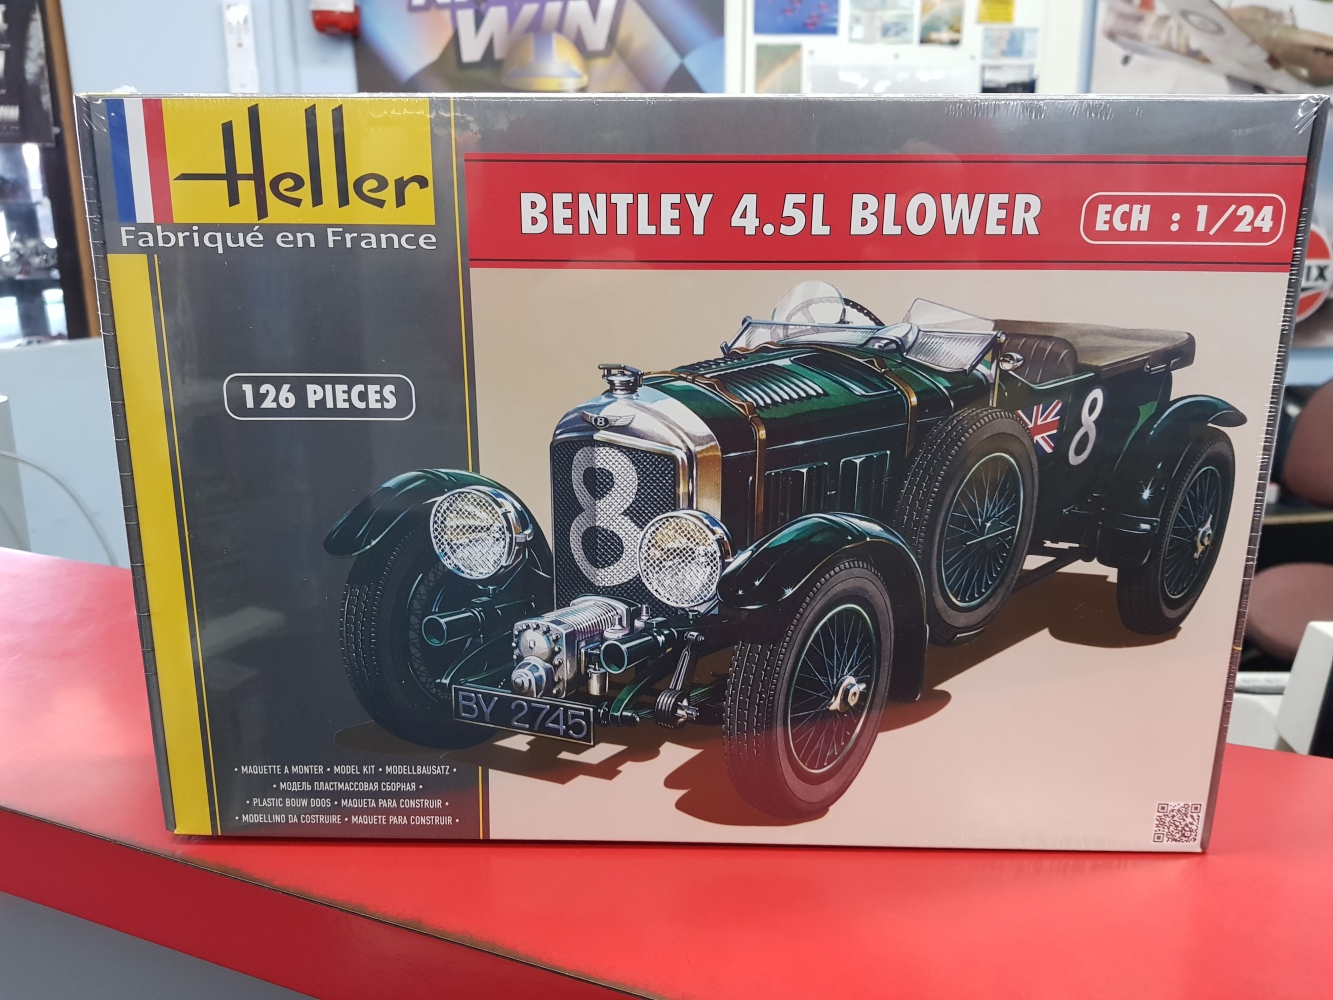 Bently Blower 4.5L